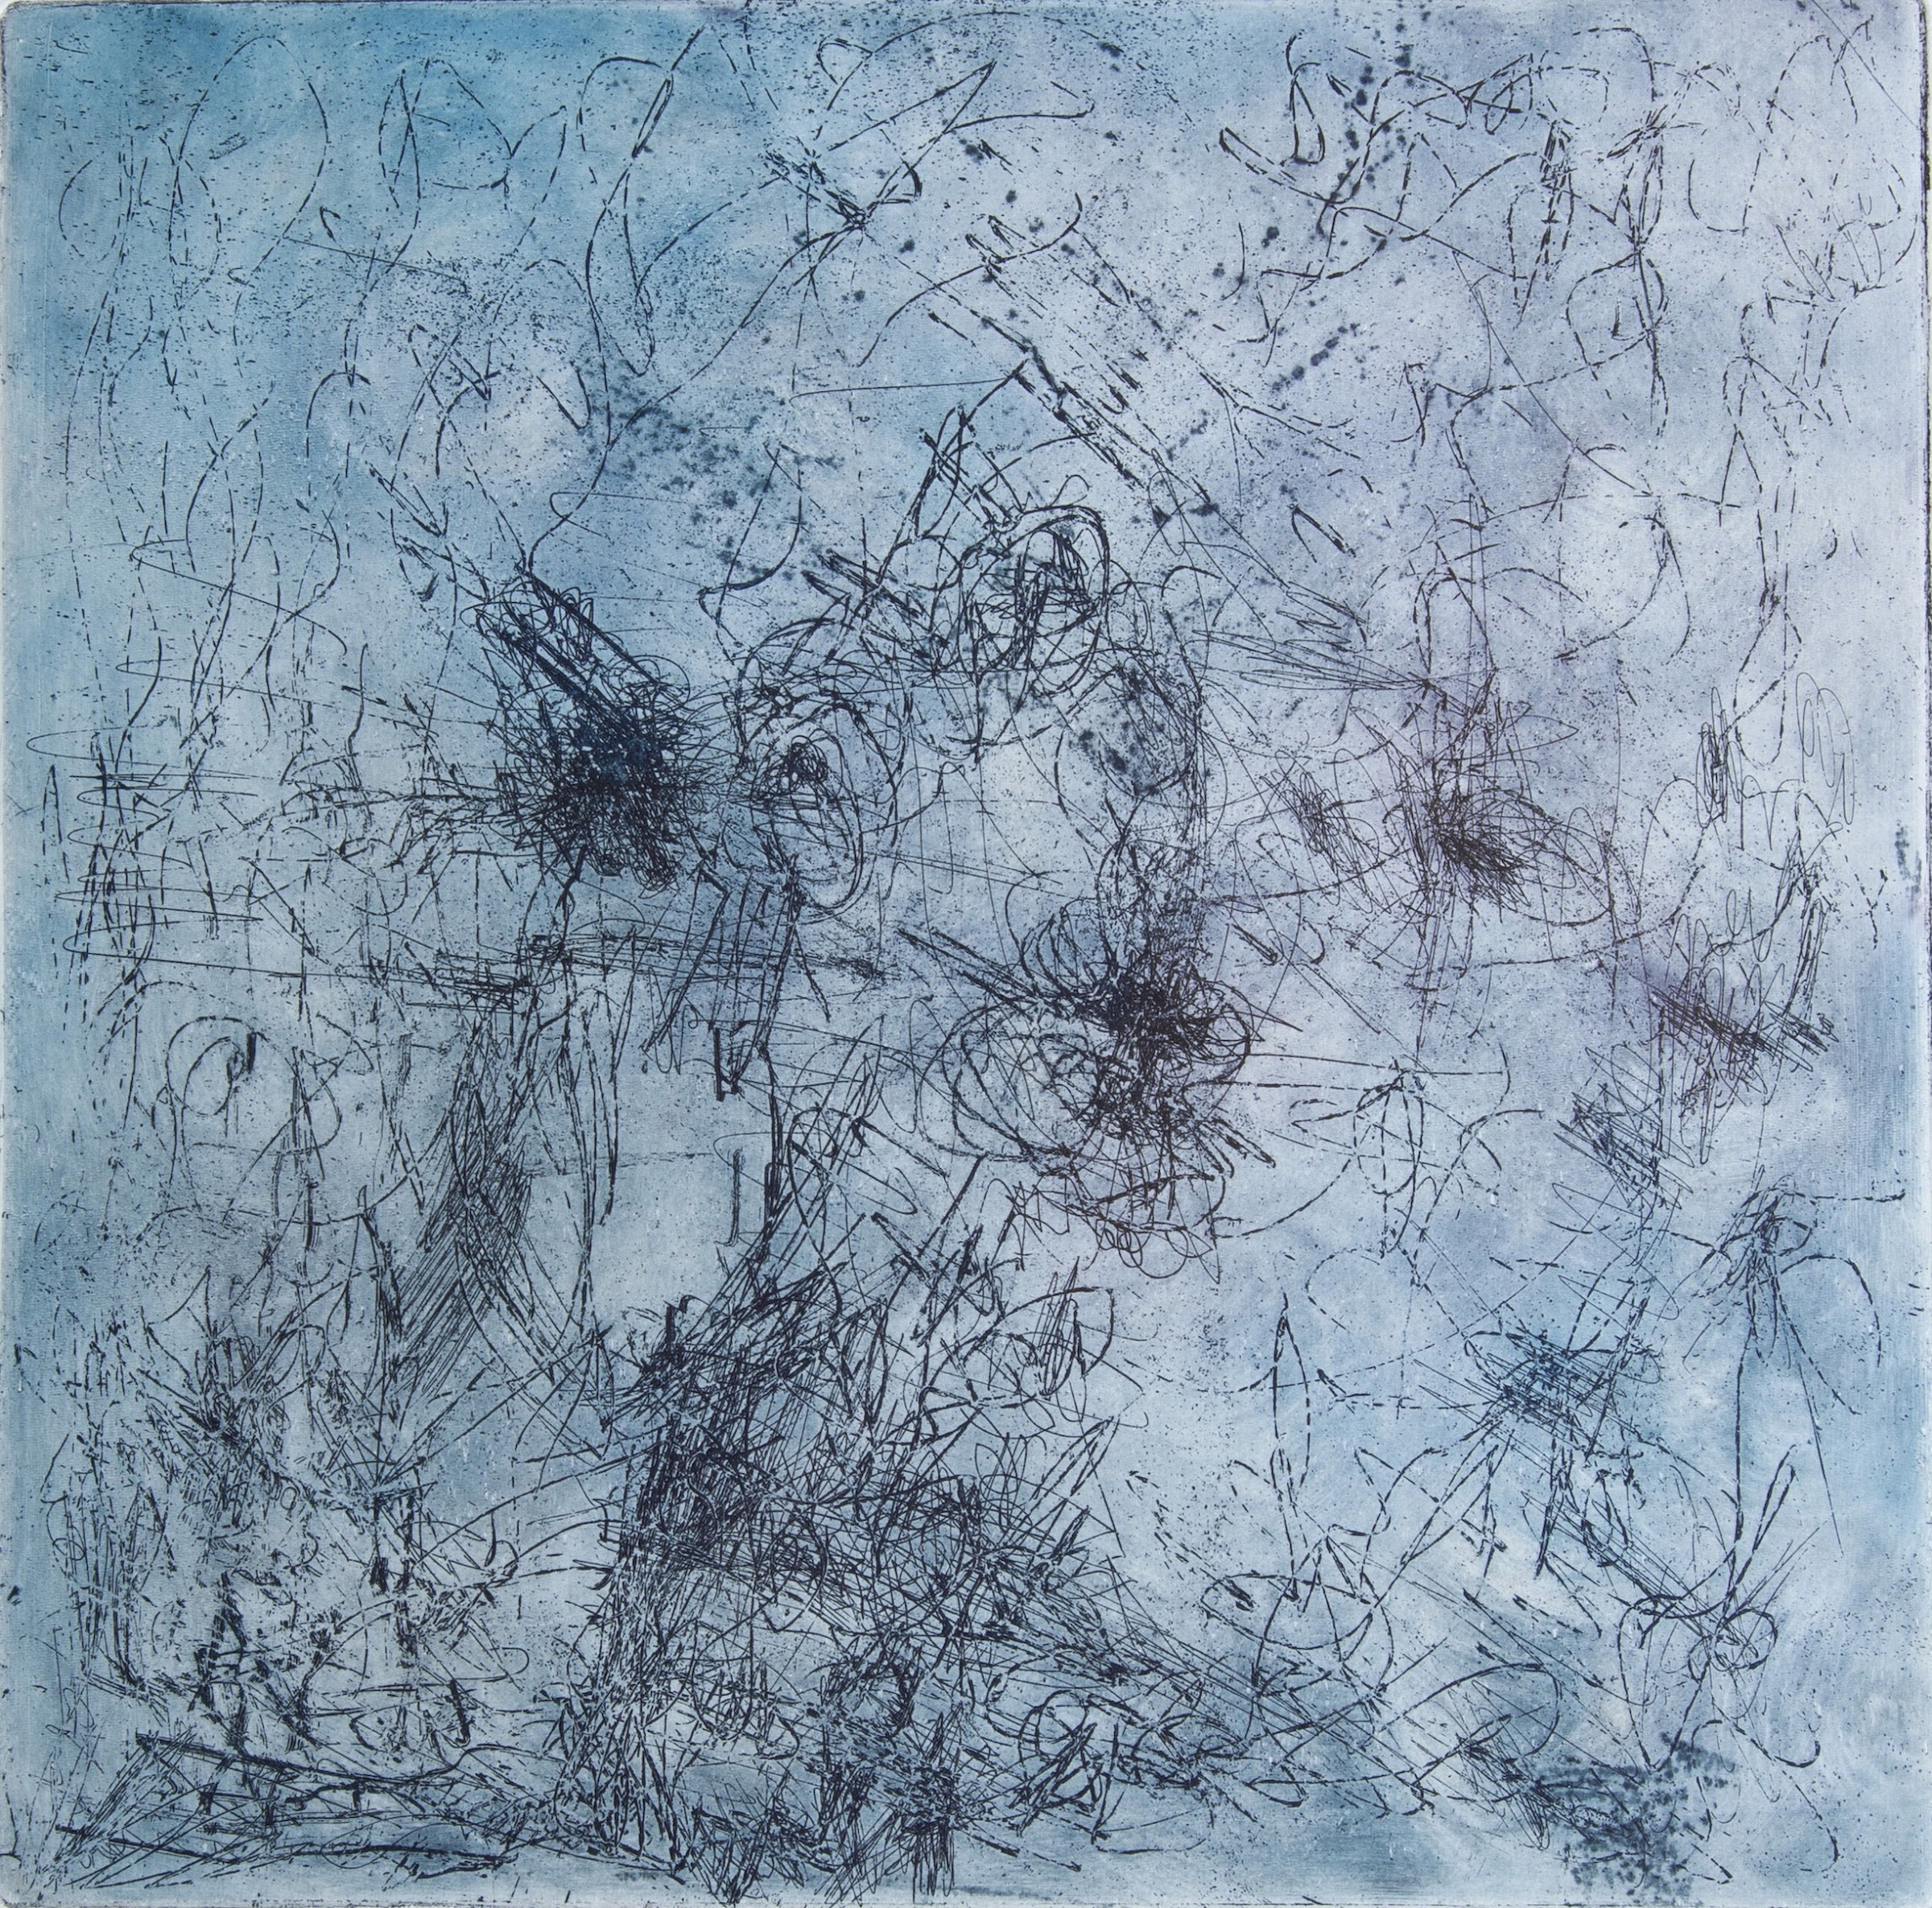 """<span class=""""link fancybox-details-link""""><a href=""""/exhibitions/17/works/image_standalone727/"""">View Detail Page</a></span><p><strong>Irena Krizman</strong></p><p>Rhythms II</p><p>etching</p><p>56 x 79cm</p><p>£400 framed</p>"""